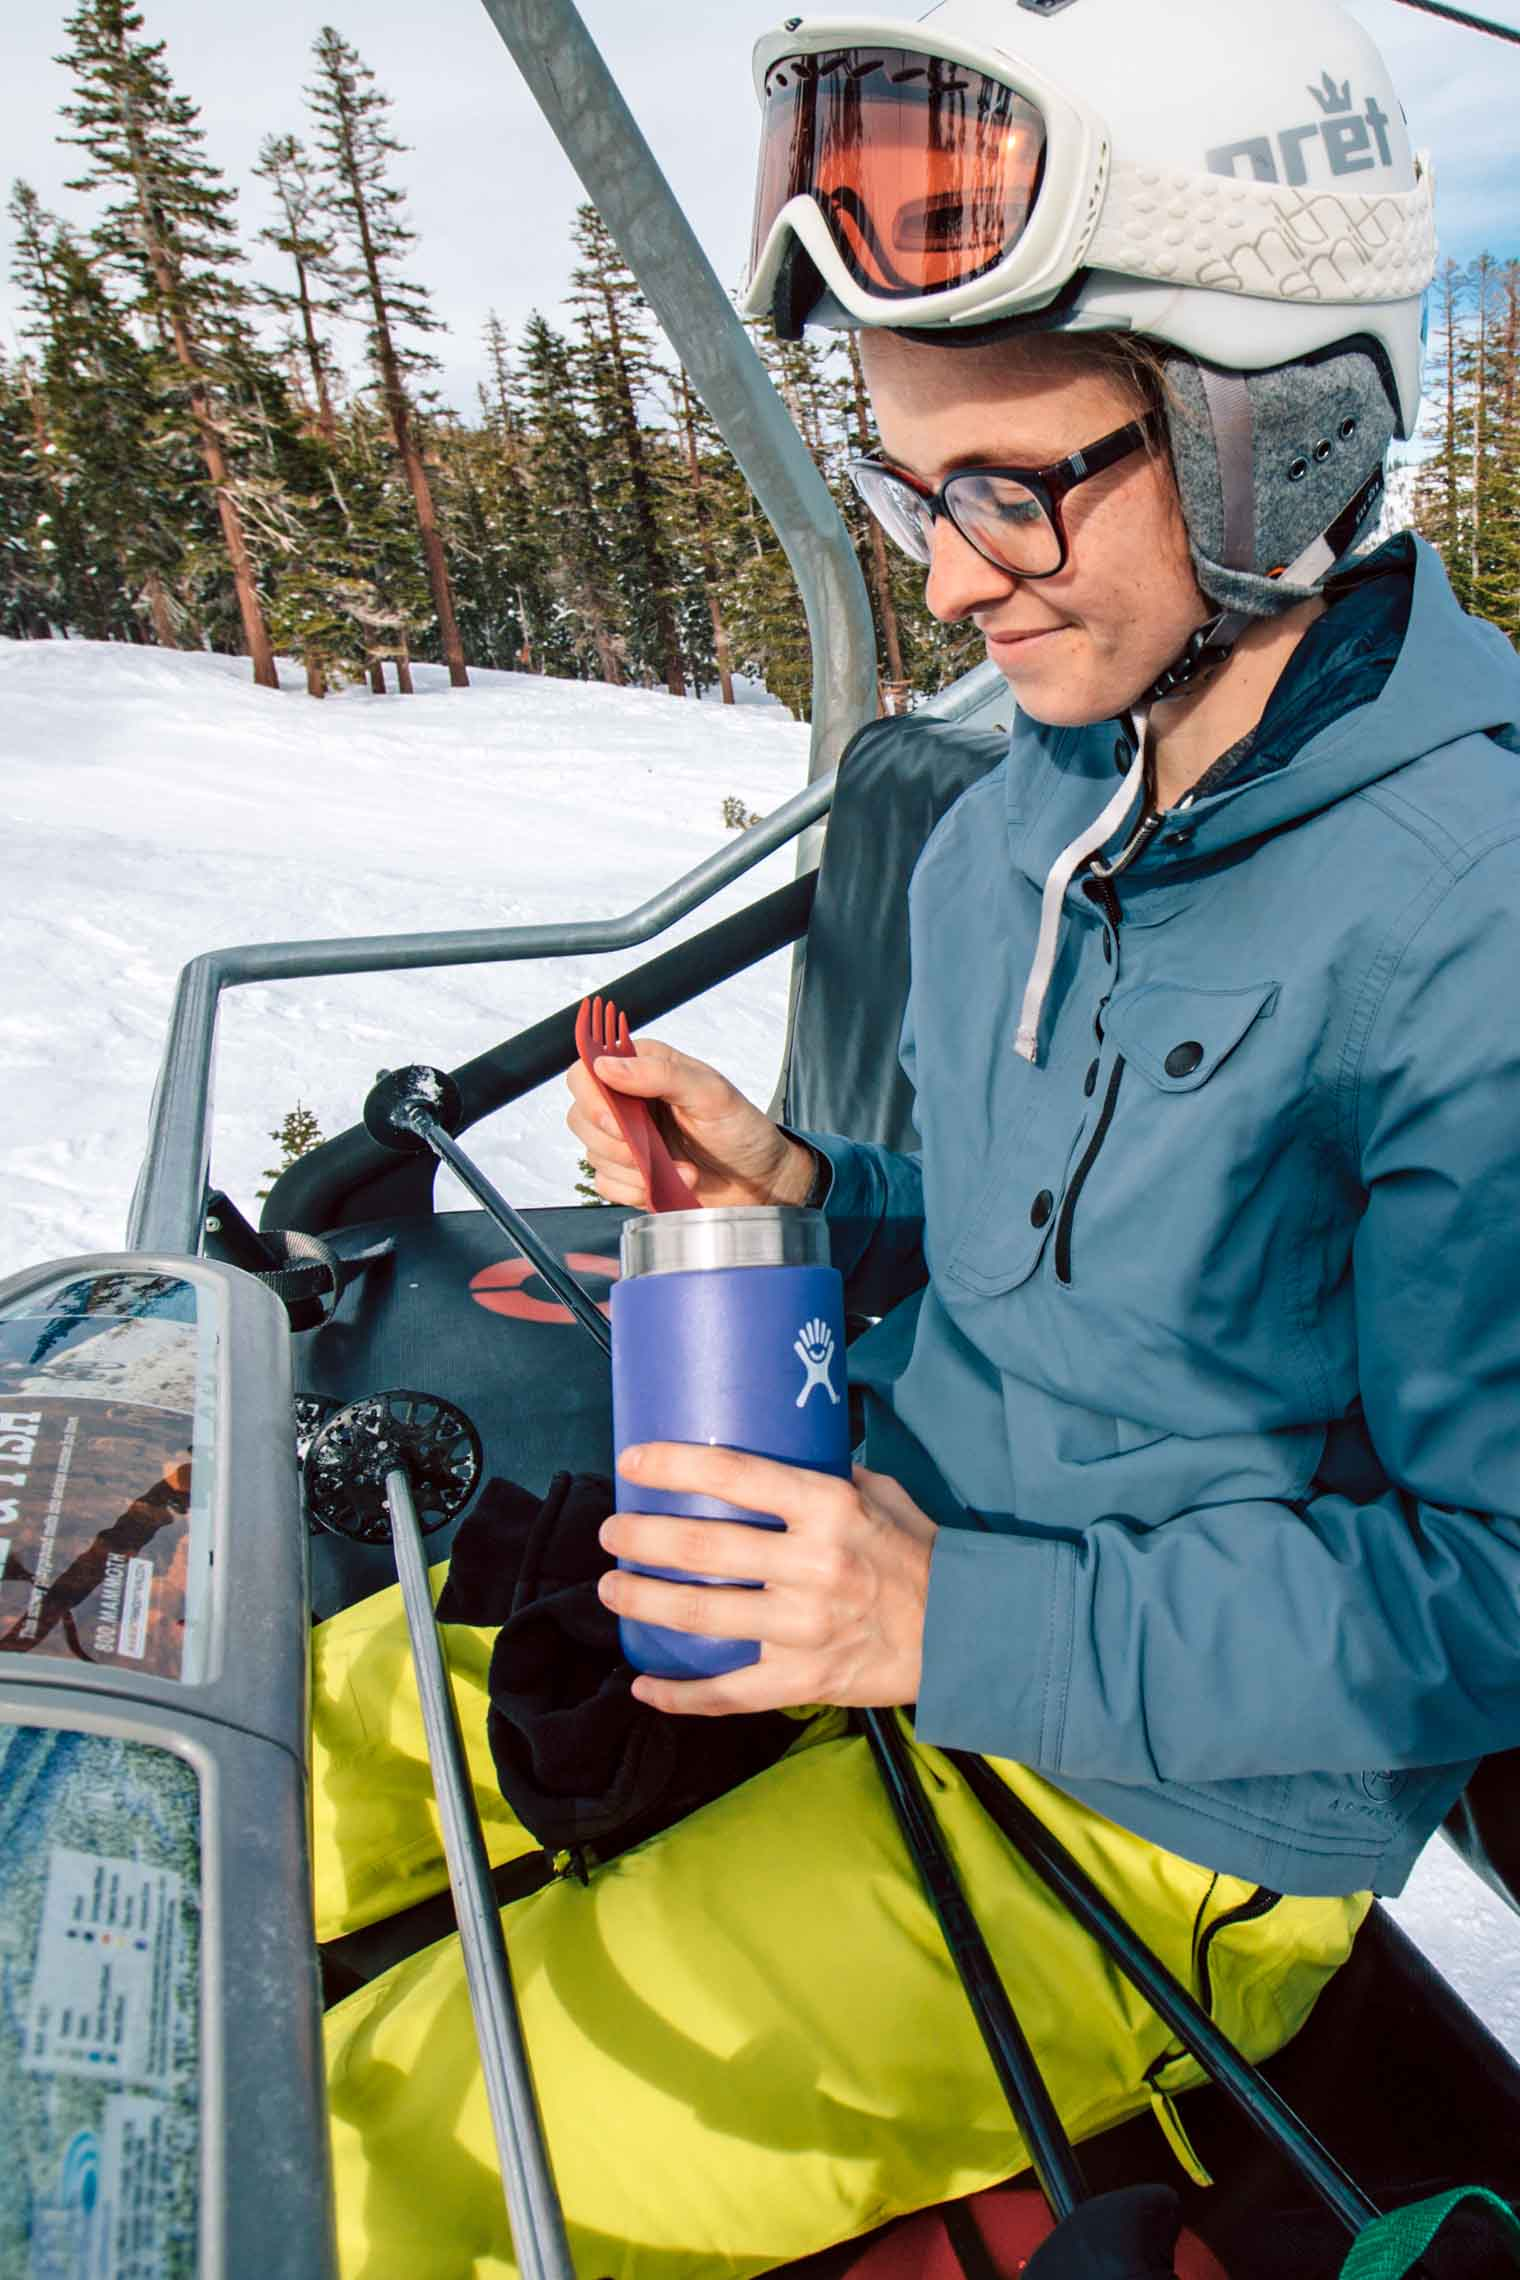 Megan eating from a insulated food container while on a ski lift